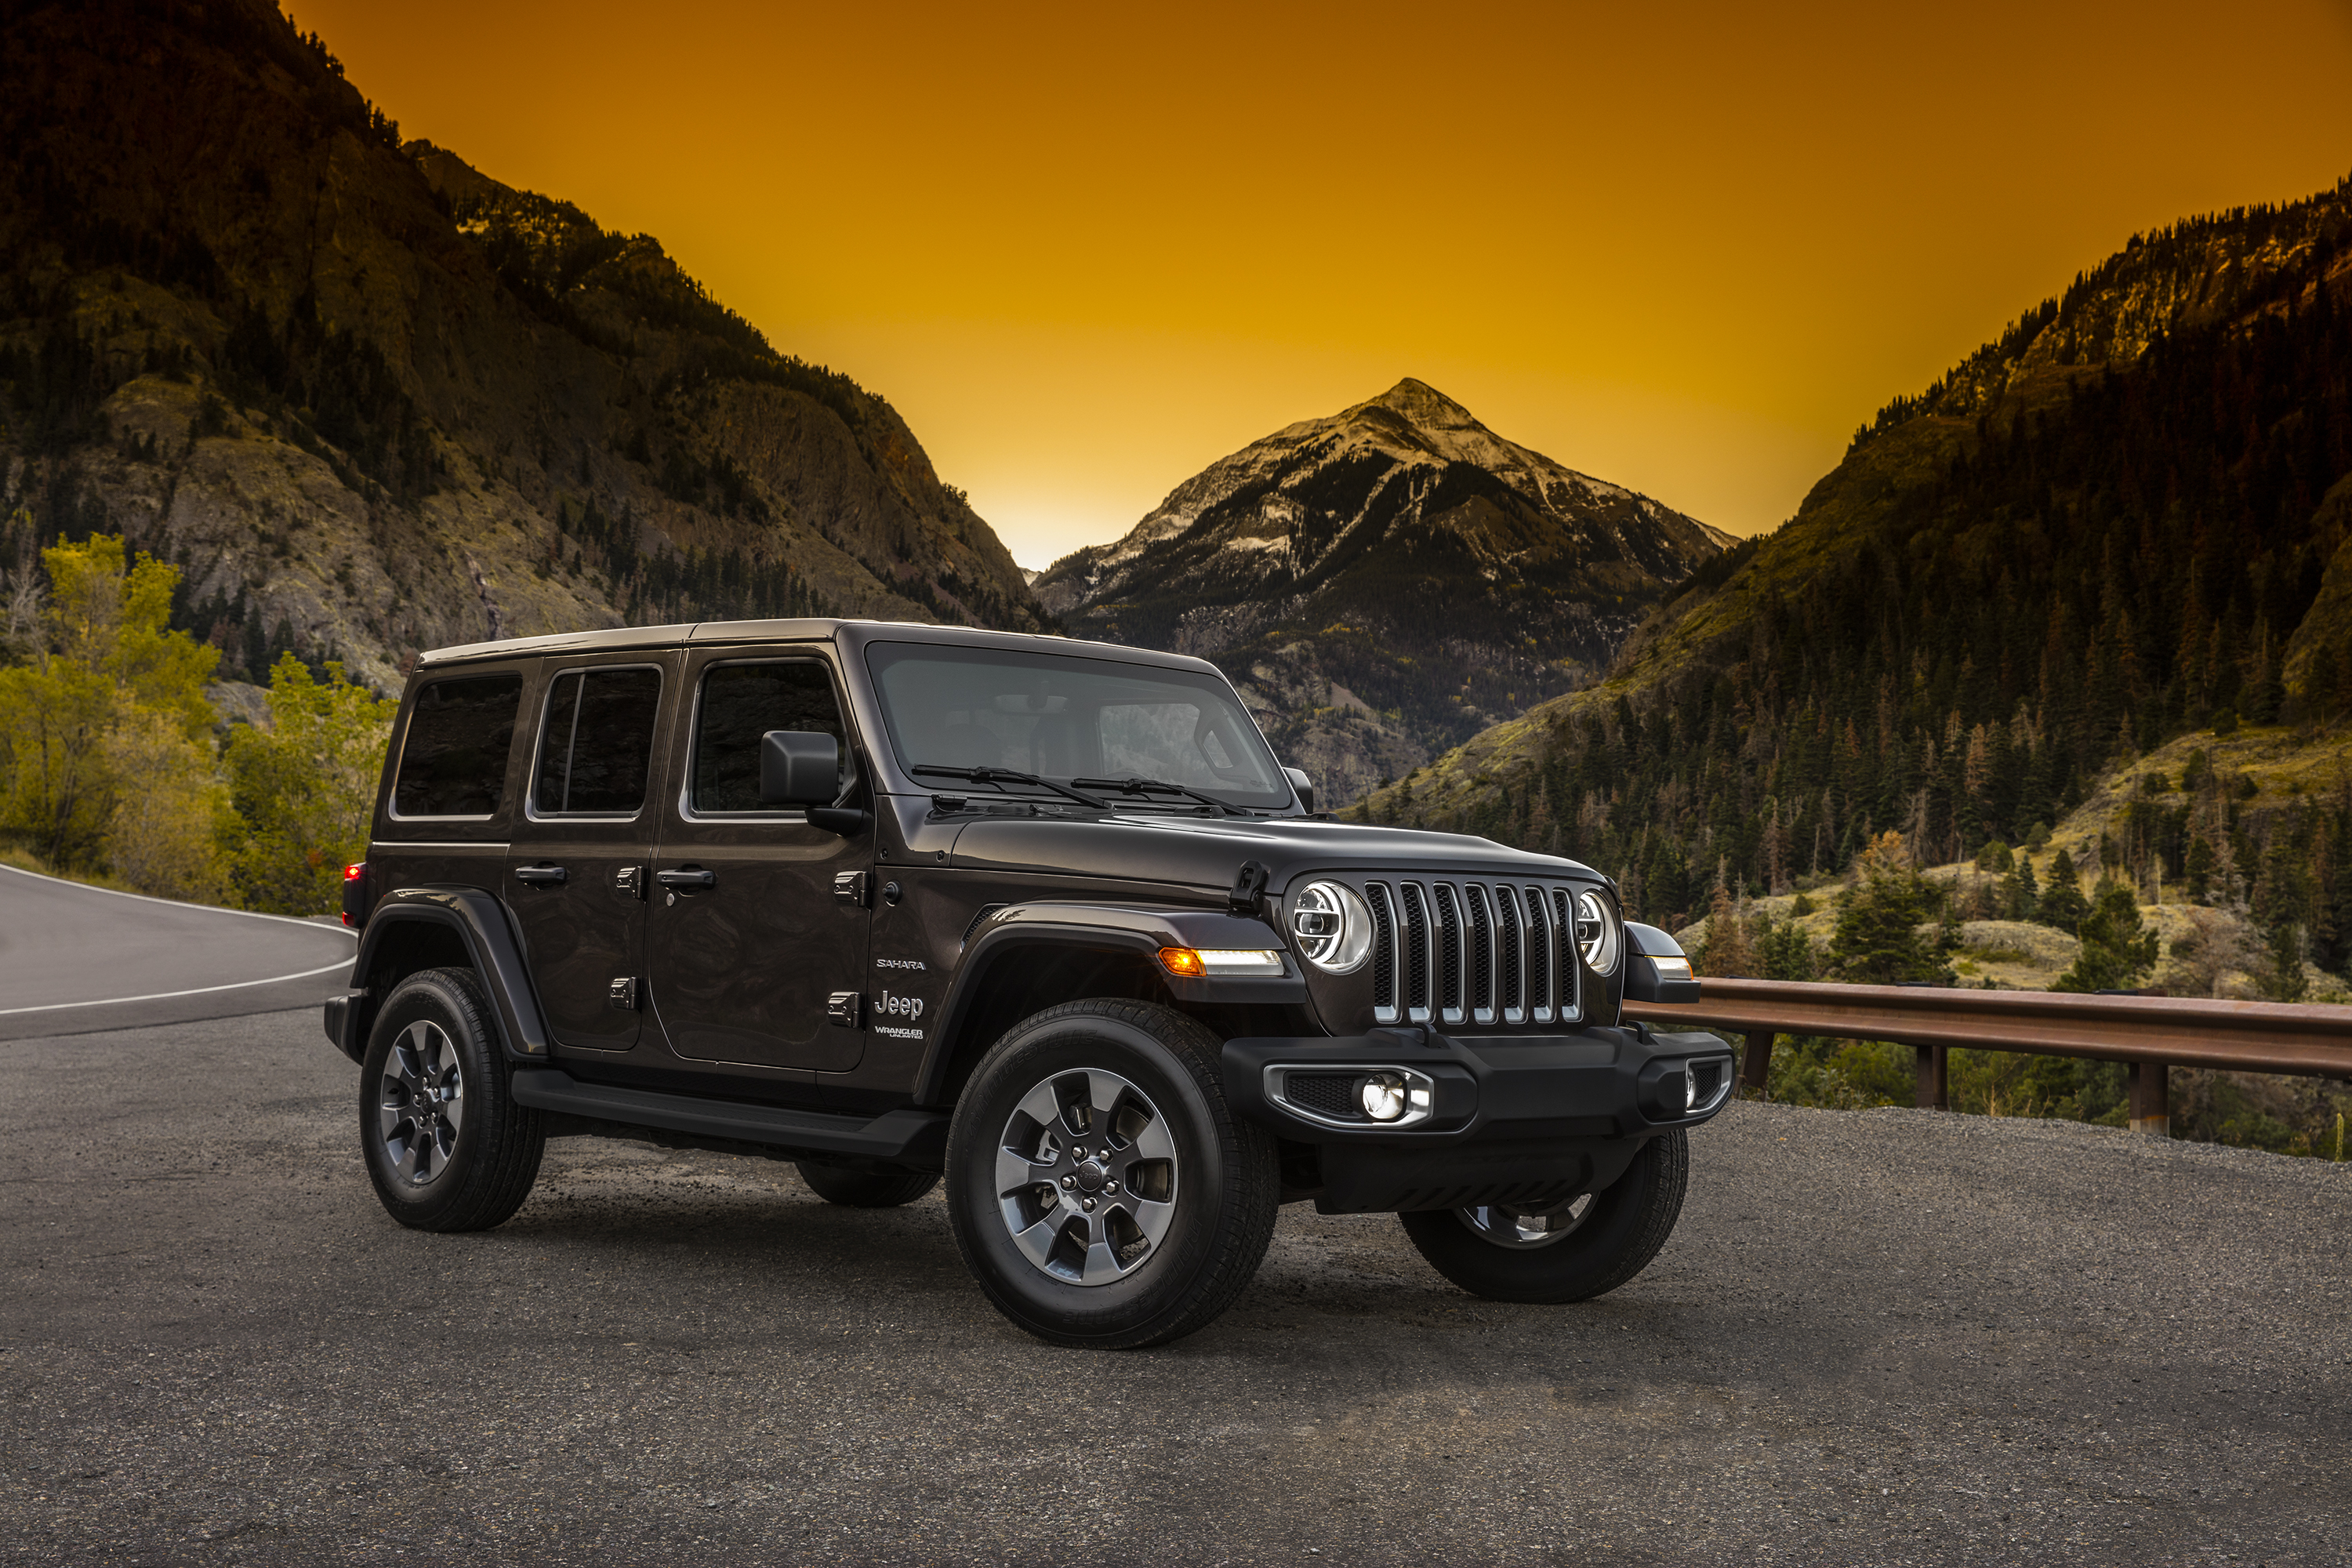 2018 Jeep Wrangler: Redesign, Aluminum Elements, Engines >> 2018 Jeep Wrangler 100 Pounds Lighter Uses Steel Aluminum